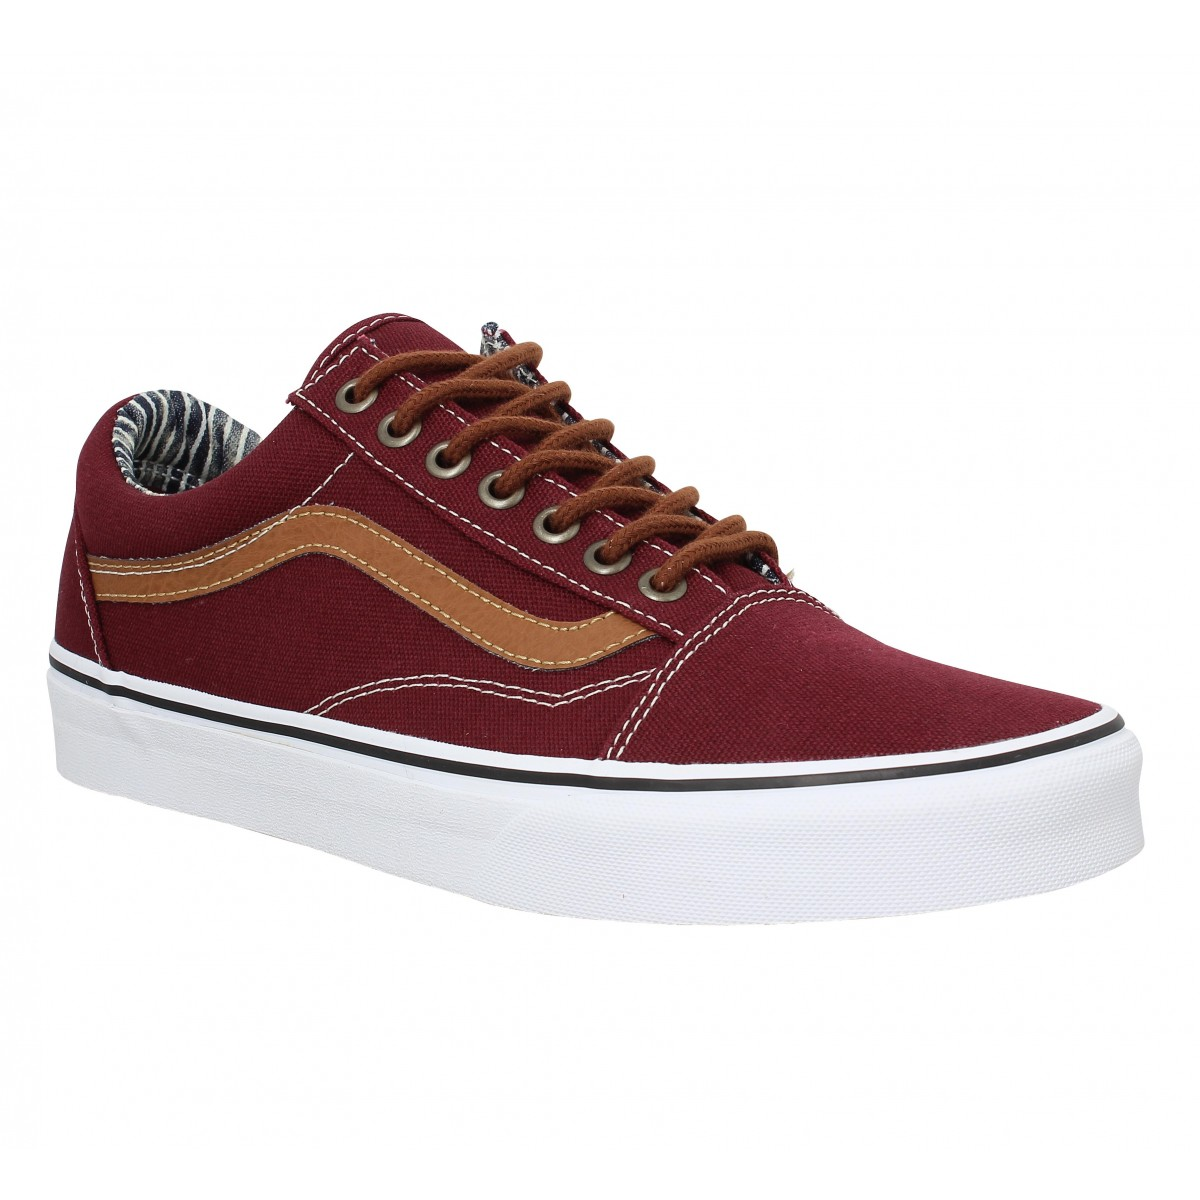 Baskets VANS Old Skool toile Homme Port Royal